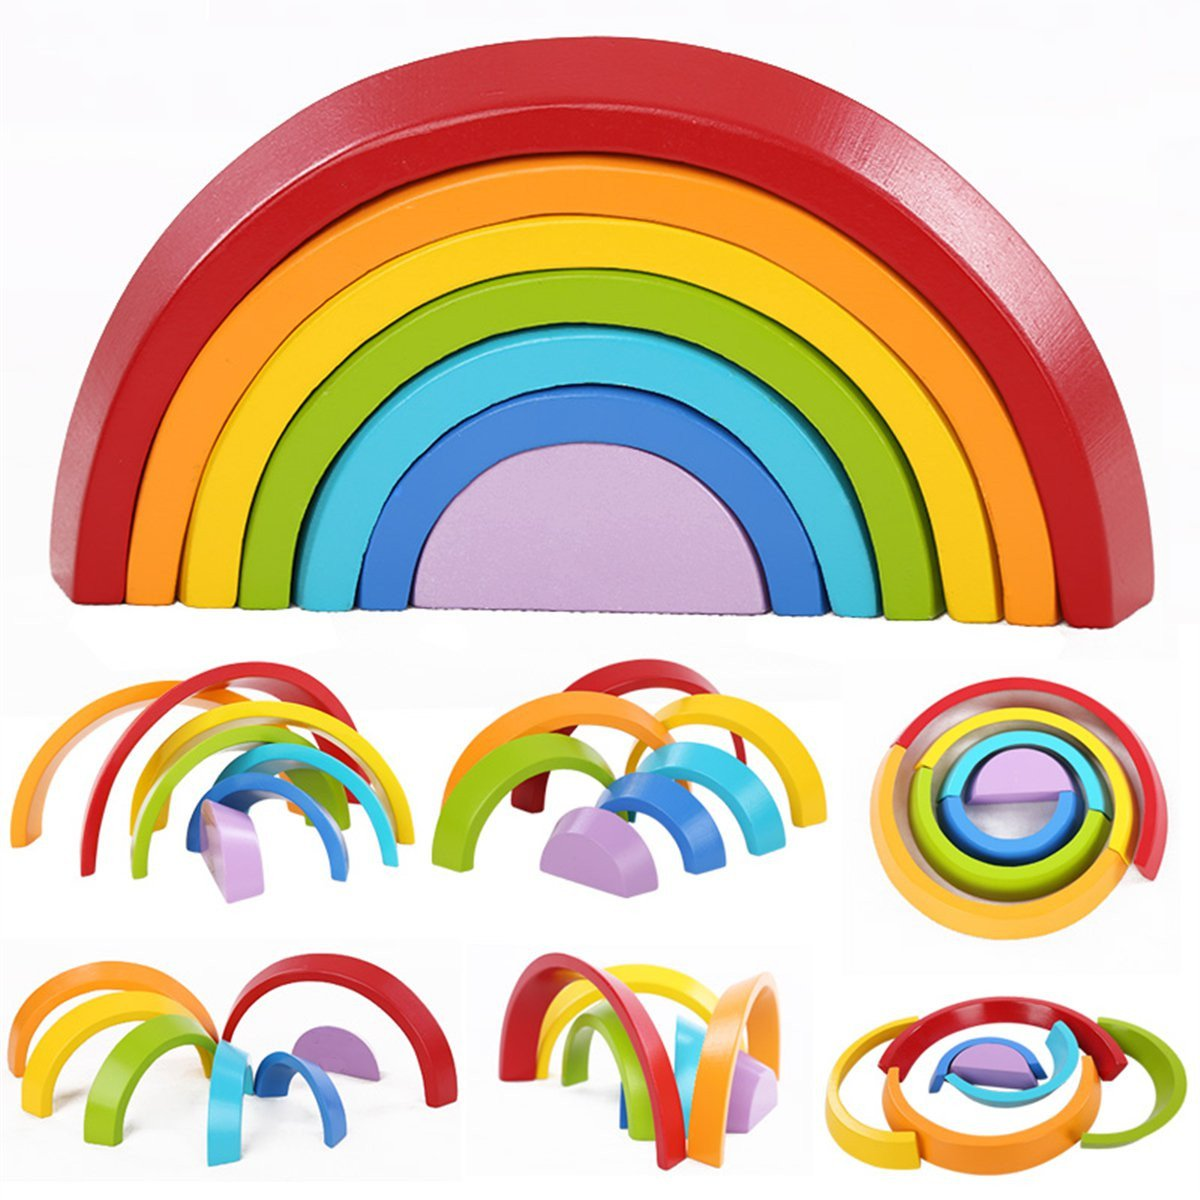 king do Way Wooden Rainbow Stacker Toys 7Pcs Nesting Stacking Game Educational Learning Toy Puzzle/Creative Colorful Building Blocks for Kids Baby